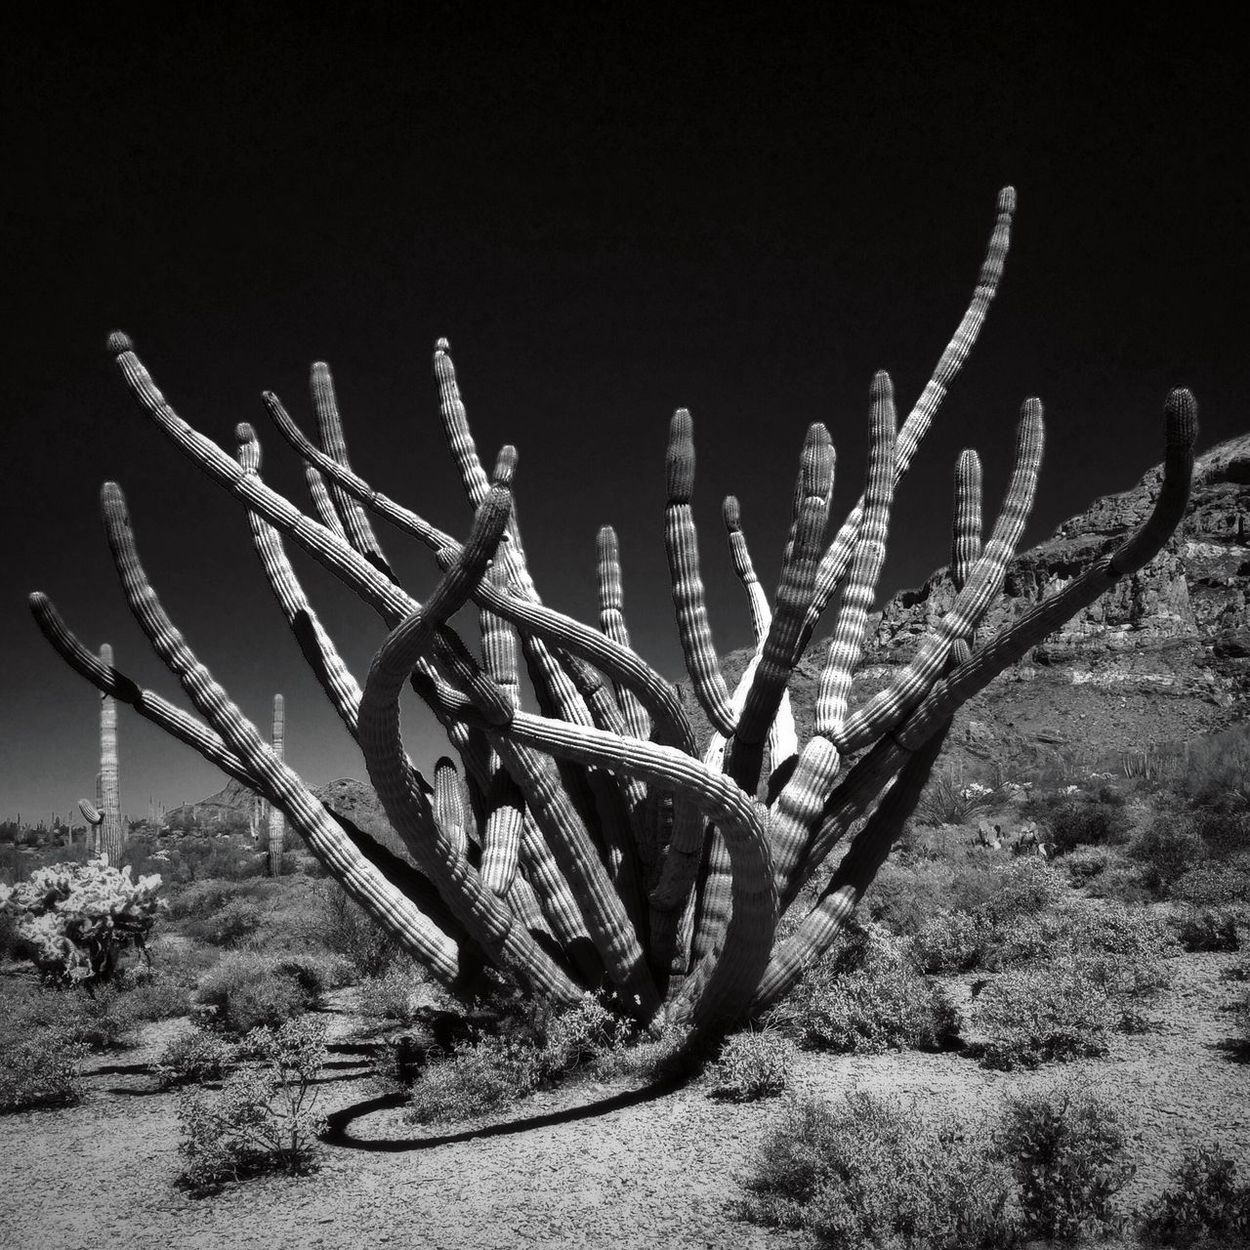 A symphonybof arms, Organ Pipe Cactus National Monument Organ Pipe Cactus Mobilephotography Sonoran Desert Arizona Outdoors Nature Growth No People Saguaro Cactus Cactus Plant Beauty In Nature